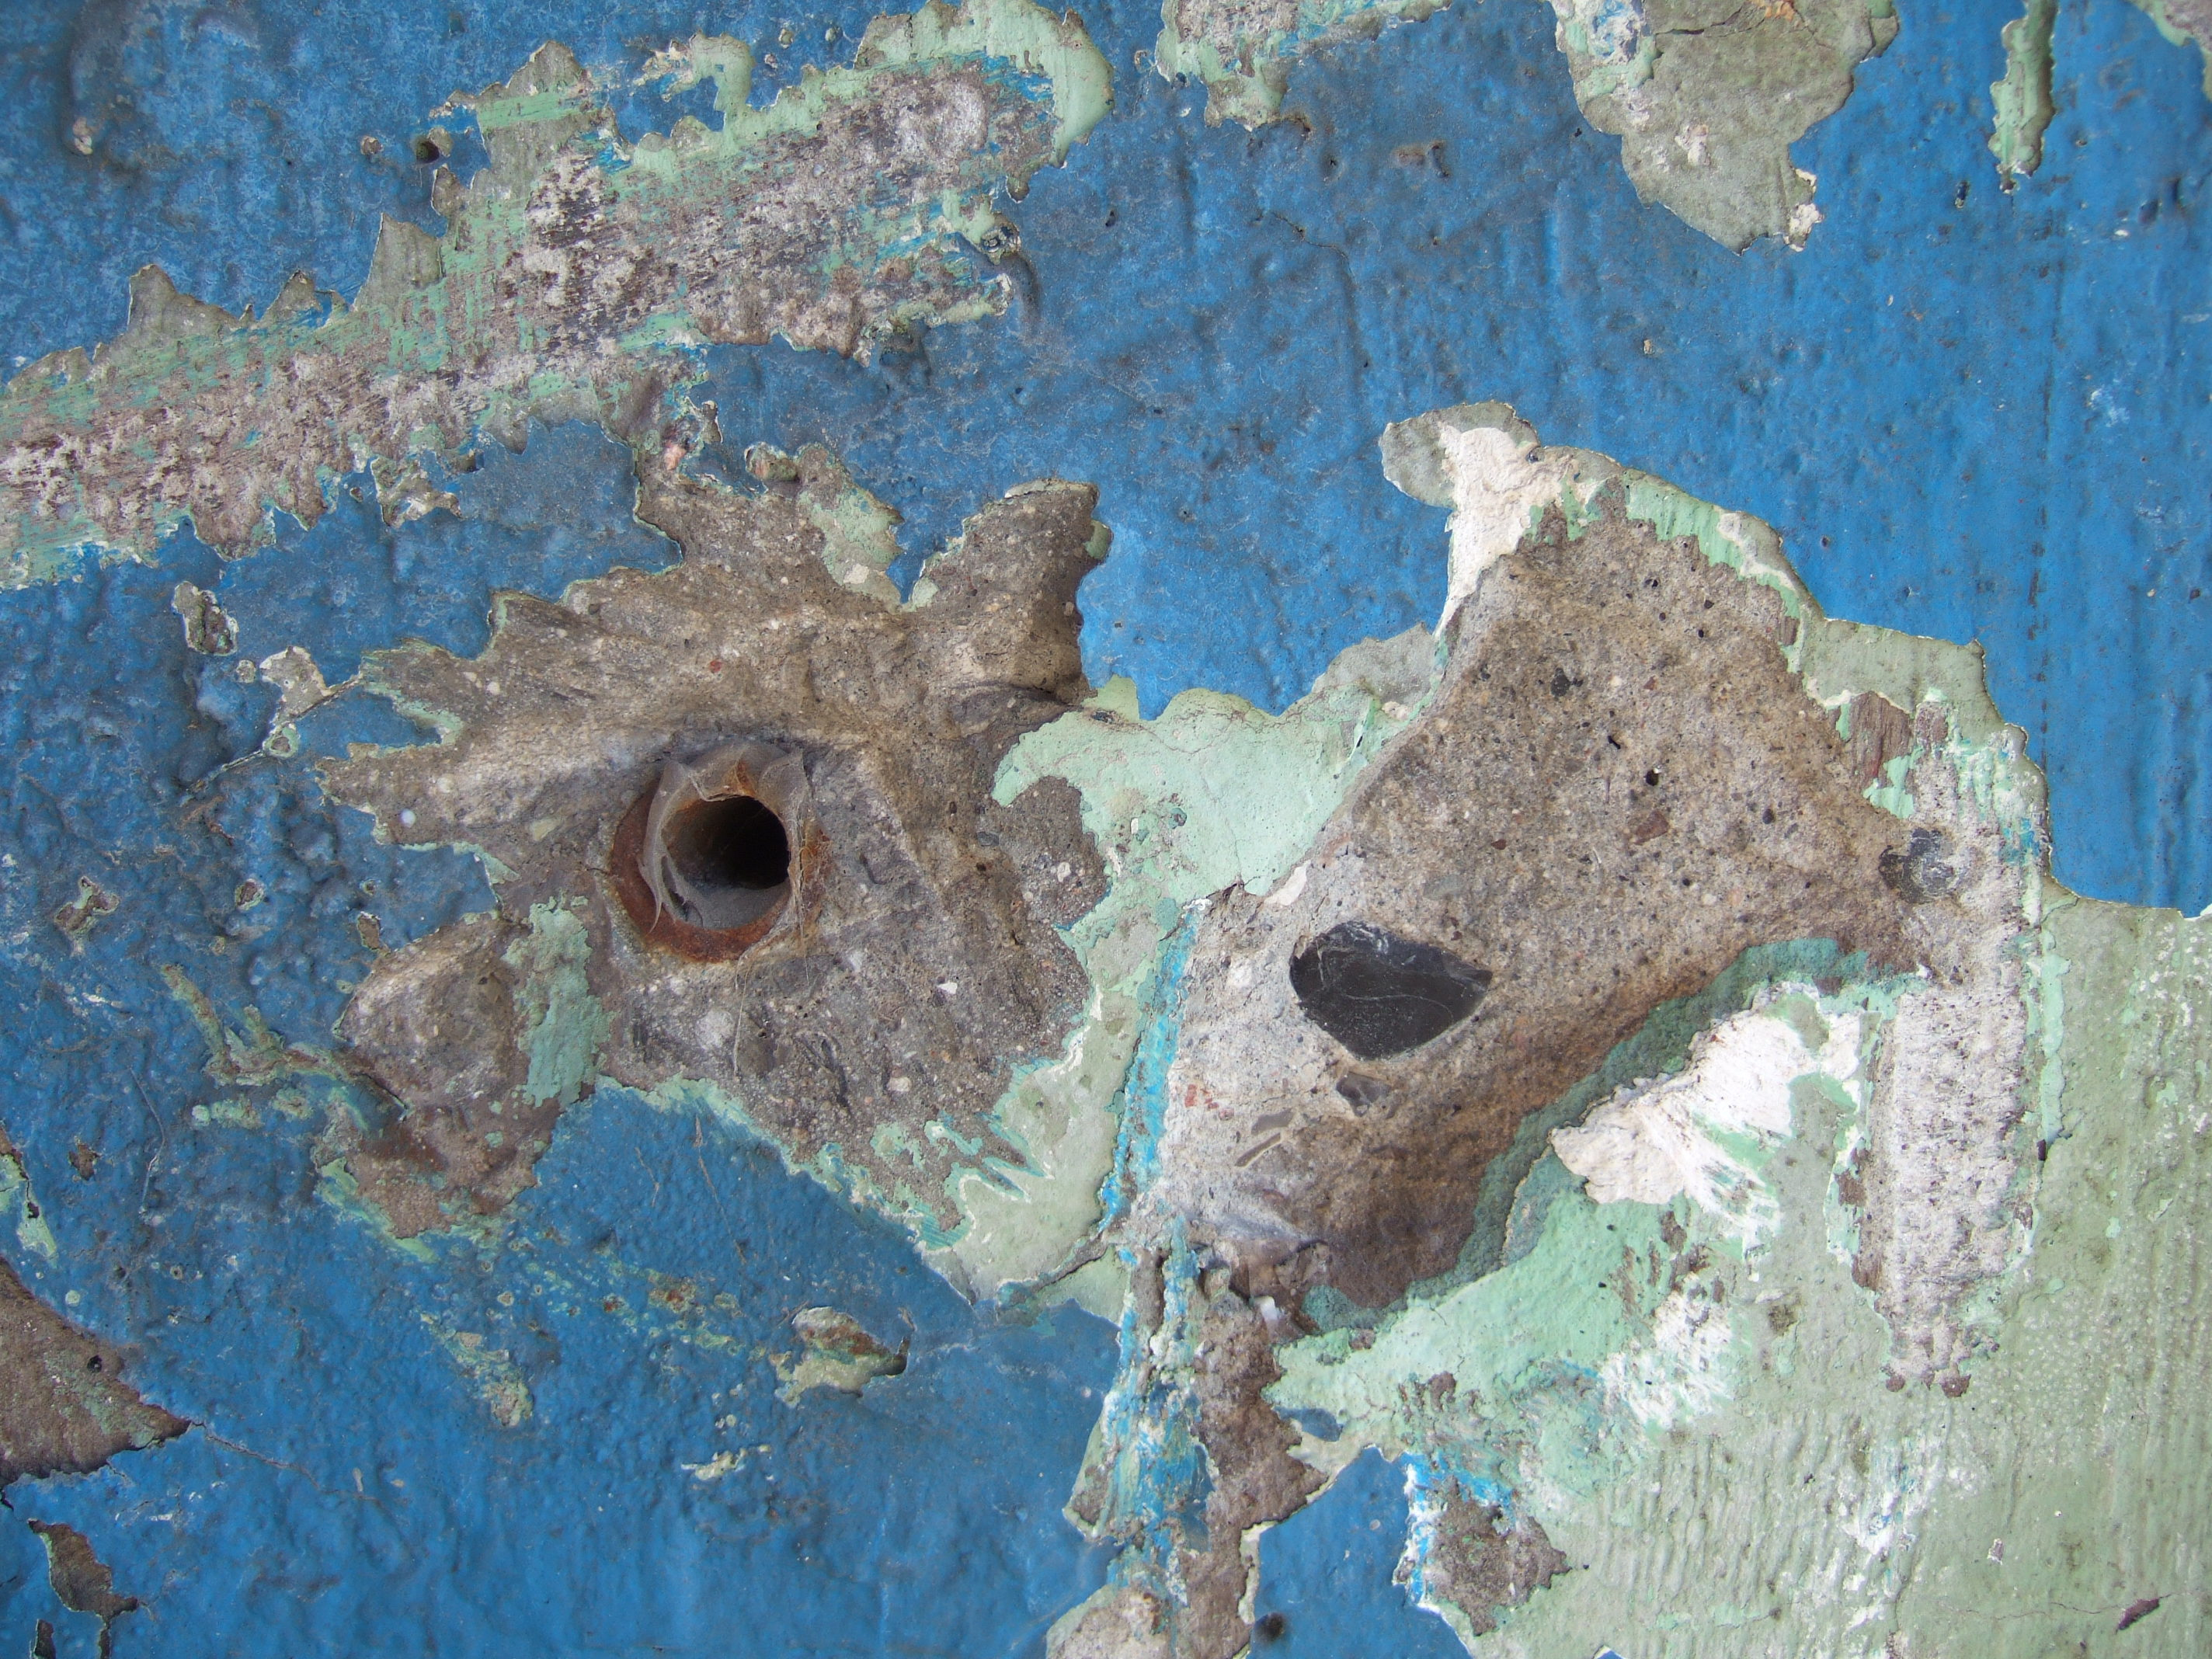 tabus hole in concrete pillar blue chipped paint corroded